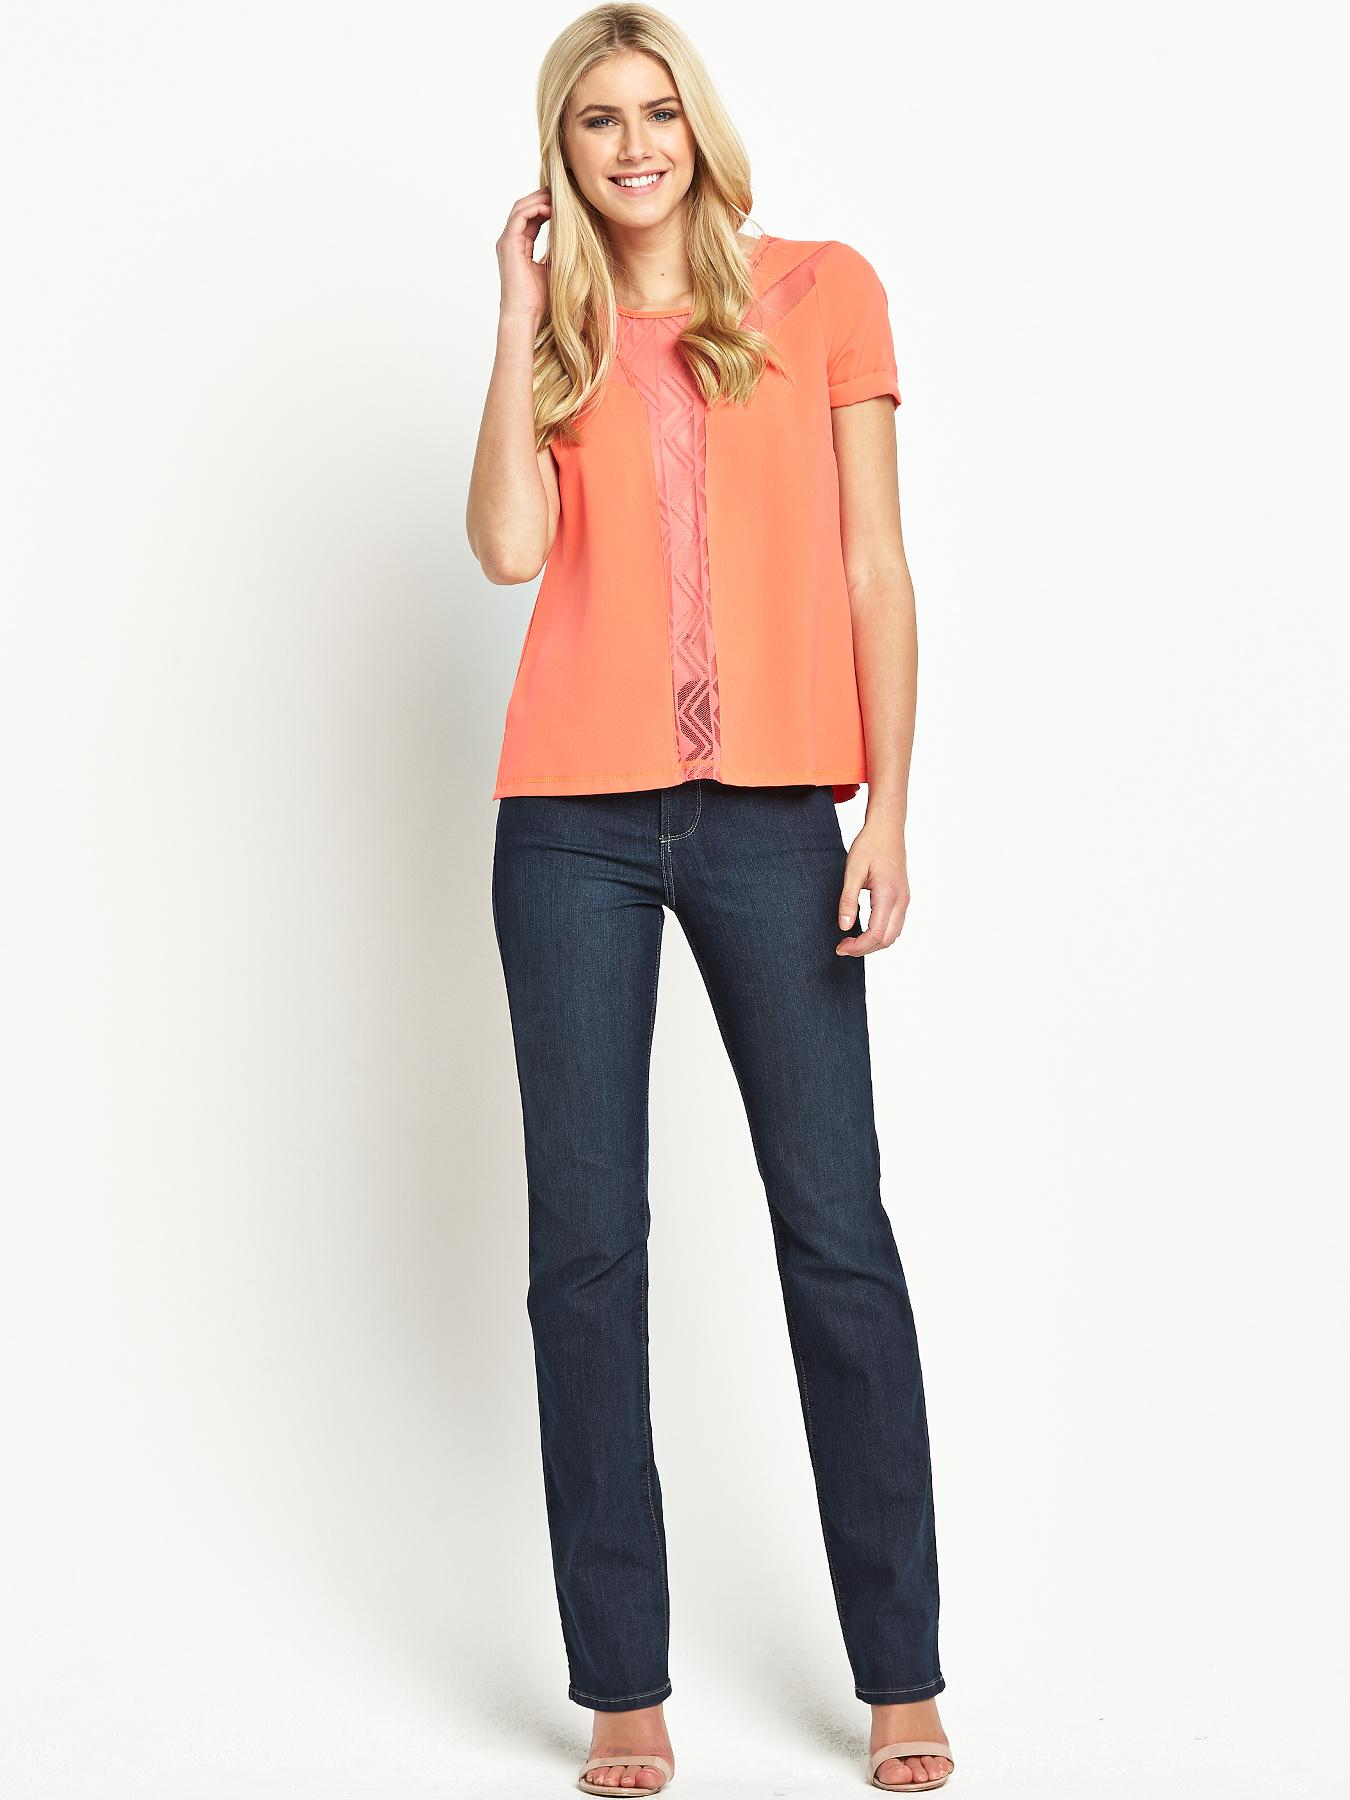 Shop for women's high waisted skinny jeans that feel as good as they look at American Eagle. Visit online for all styles, fits and additional sizes today! Men's Jeans Skinny Jeans Slim Fit Jeans Tapered Jeans Straight Jeans Bootcut Jeans Relaxed Fit Jeans Loose Fit Jeans Dad Jeans Baggy Jeans.